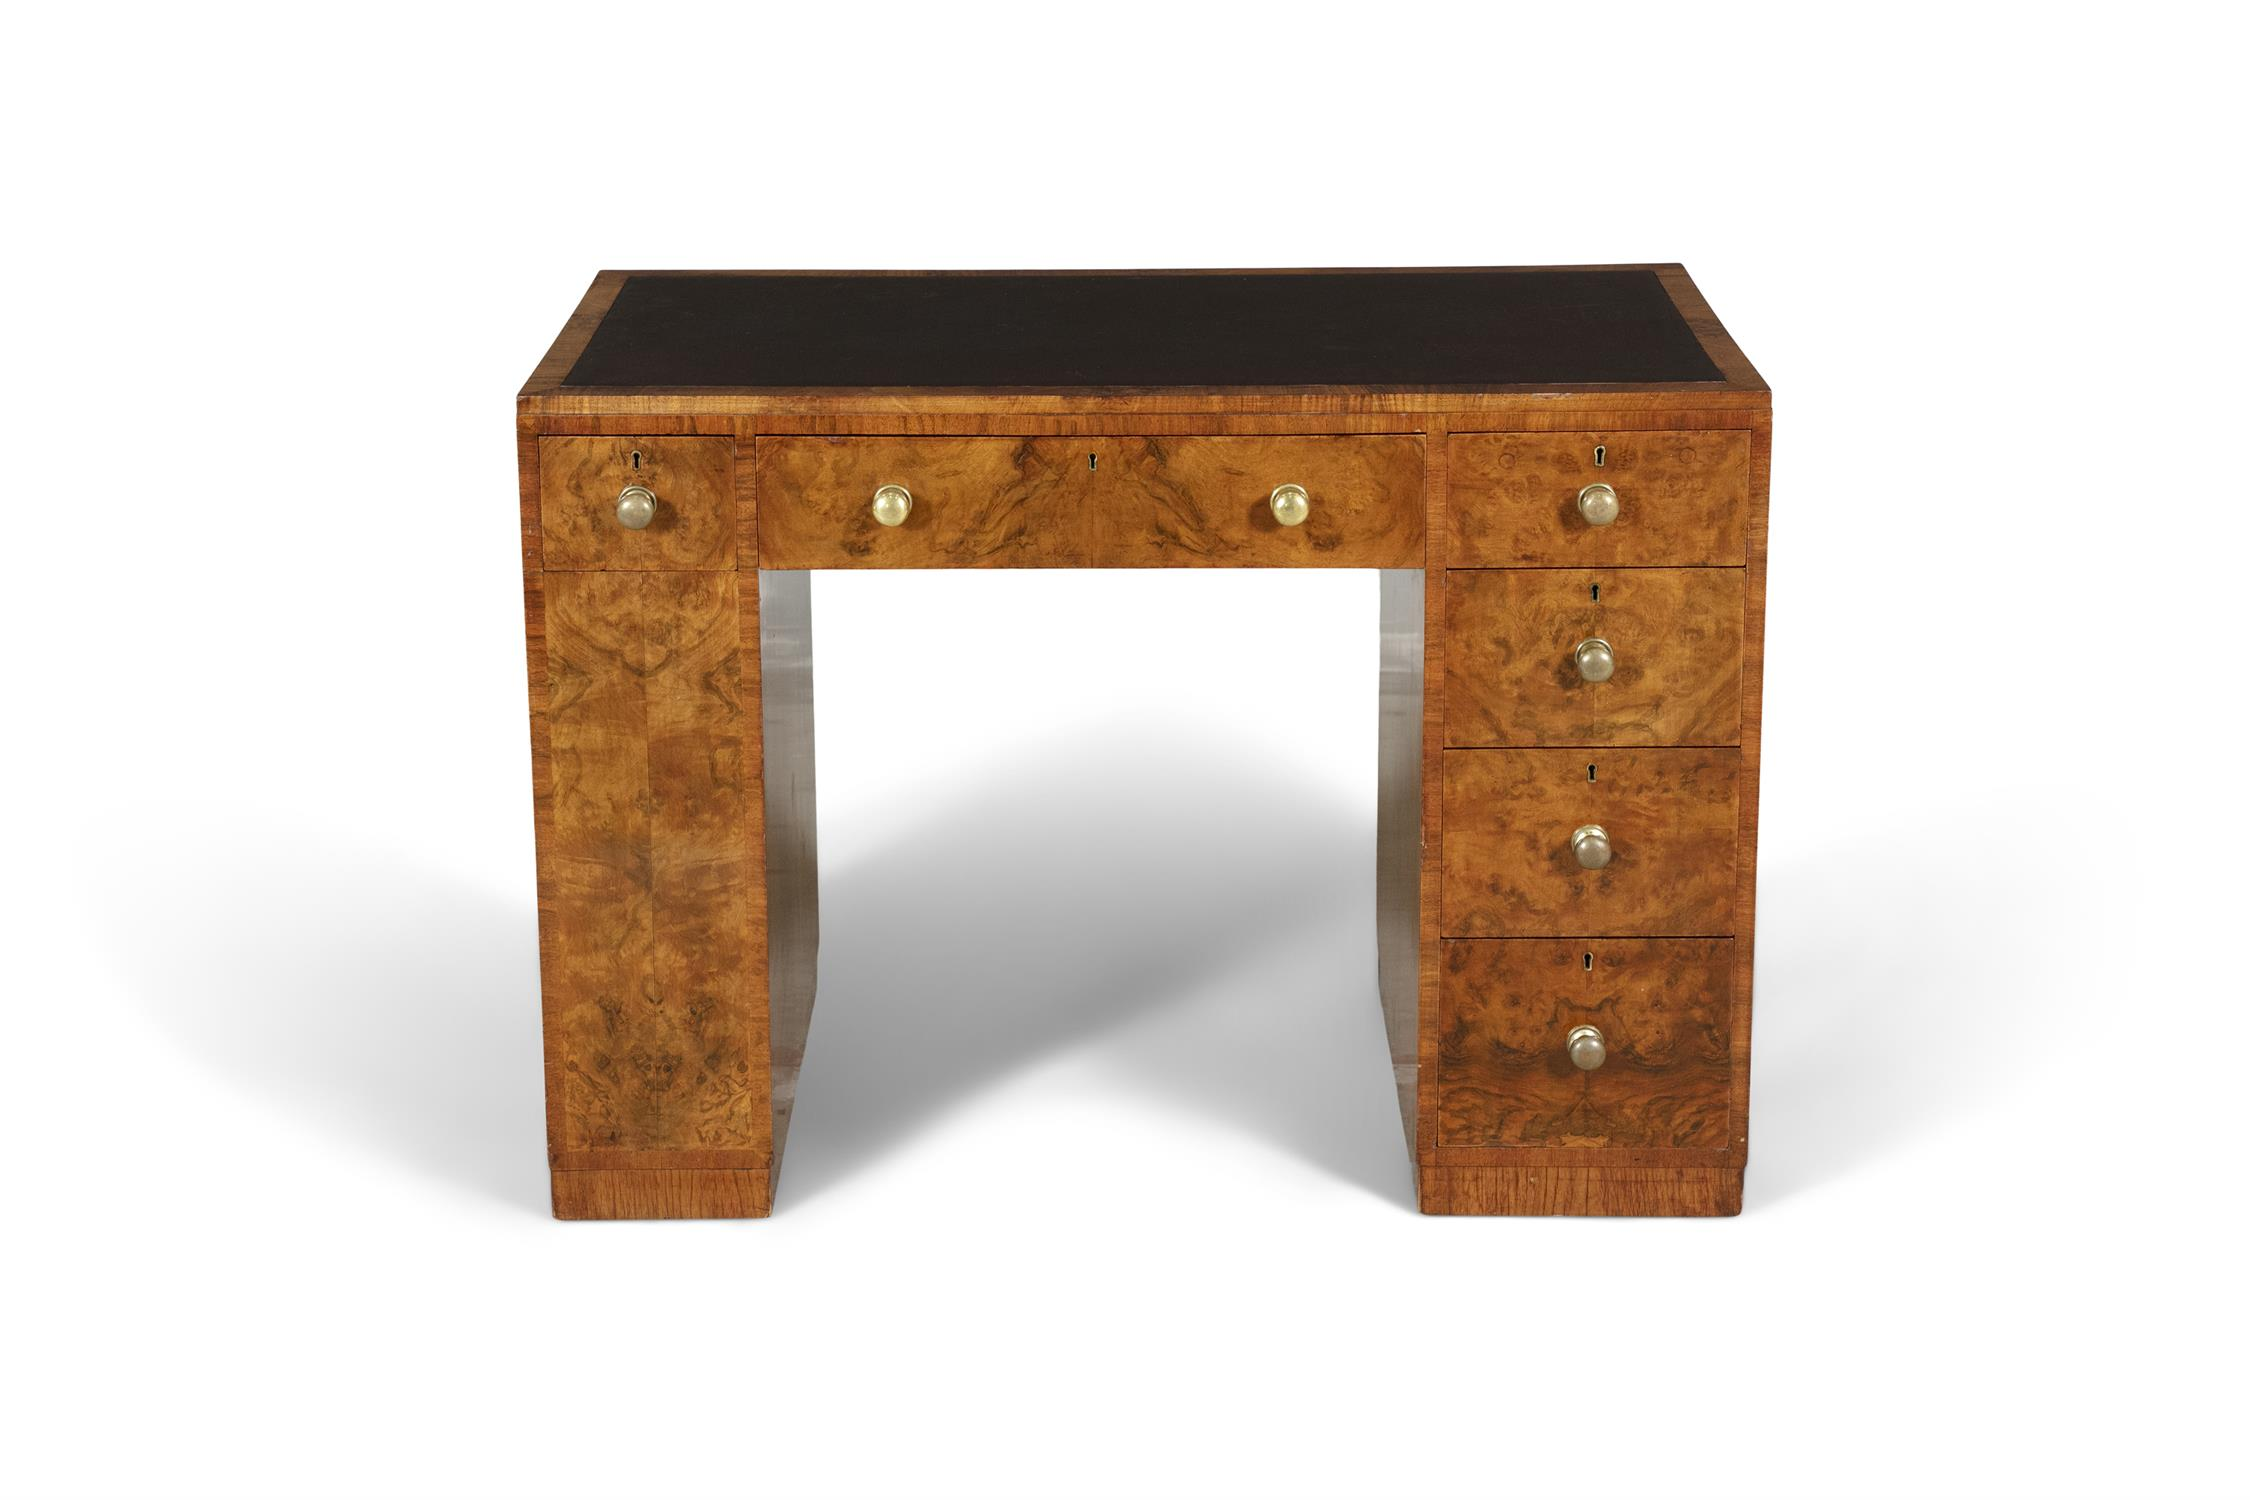 A MID 20TH-CENTURY WALNUT KNEEHOLE WRITING DESK, the rectangular top inset with brown leather